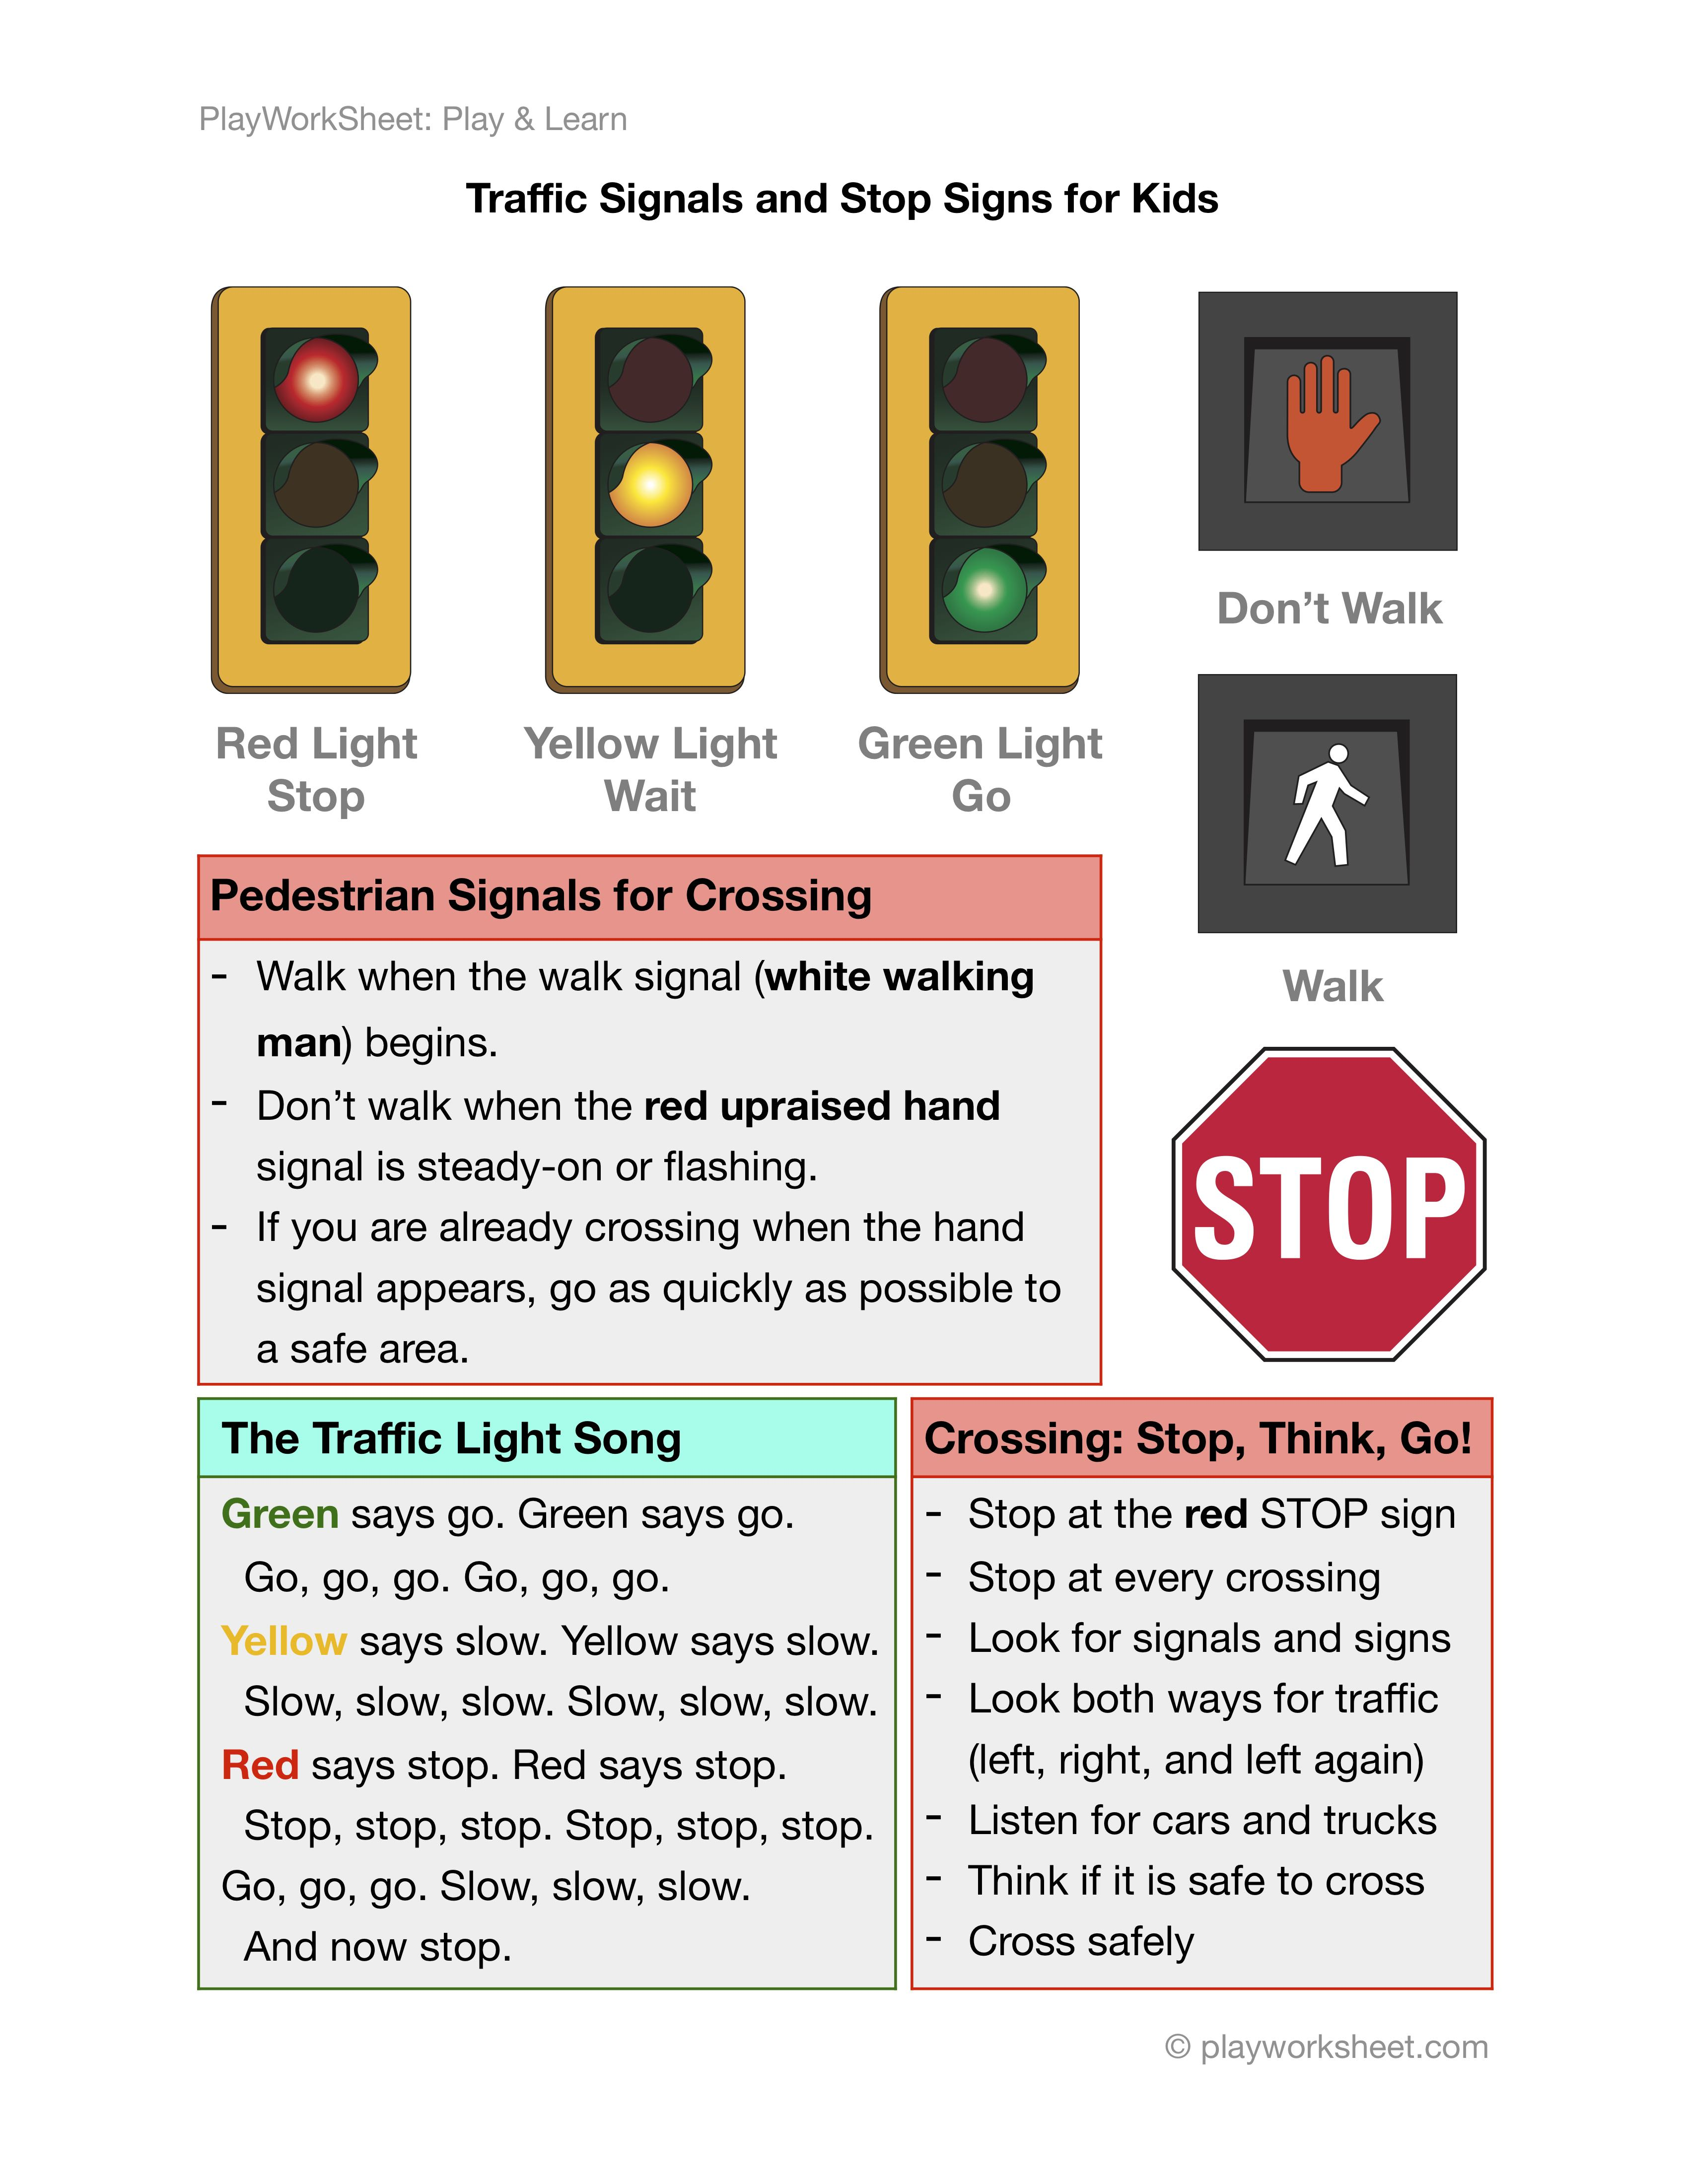 Traffic Light Pedestrians Signals And Stop Signs For